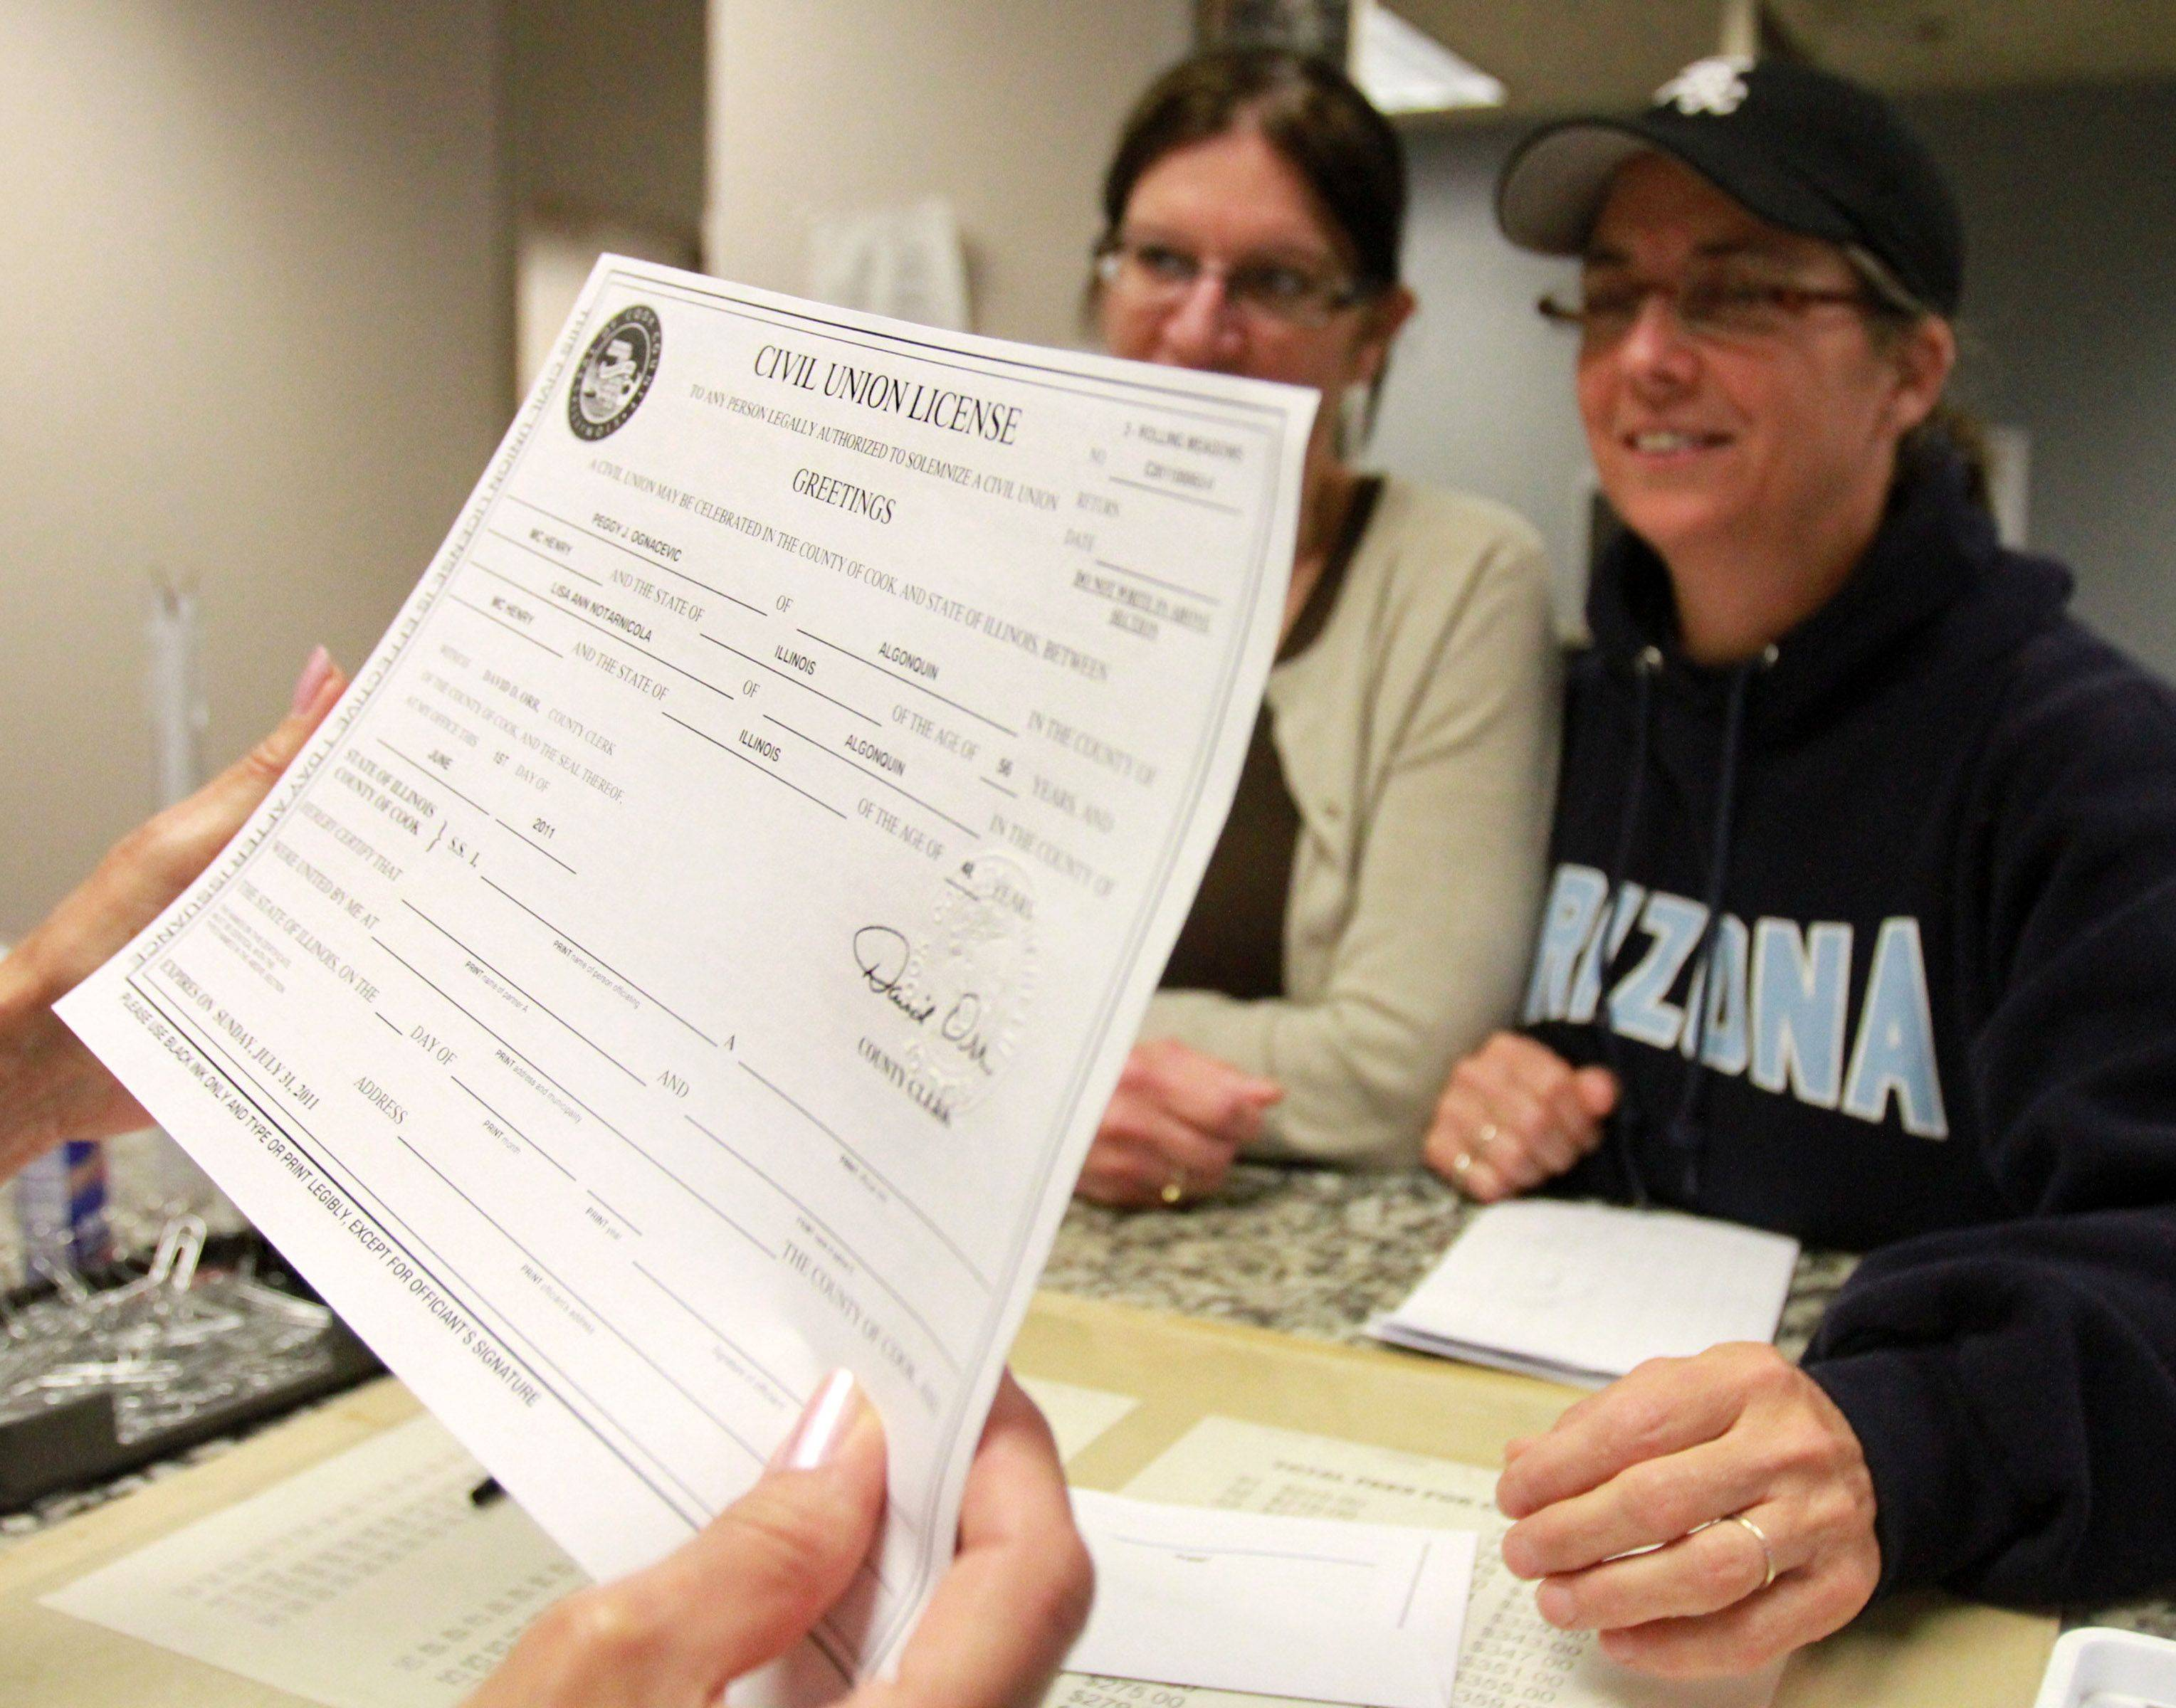 Peggy Ognacevic and Lisa Notarnicola, both of Algonquin, receive their civil union license from Lana Yacilla, supervisor in the Bureau of Vital Statistics office at the Cook County Court House in Rolling Meadows on Wednesday, June 1st.